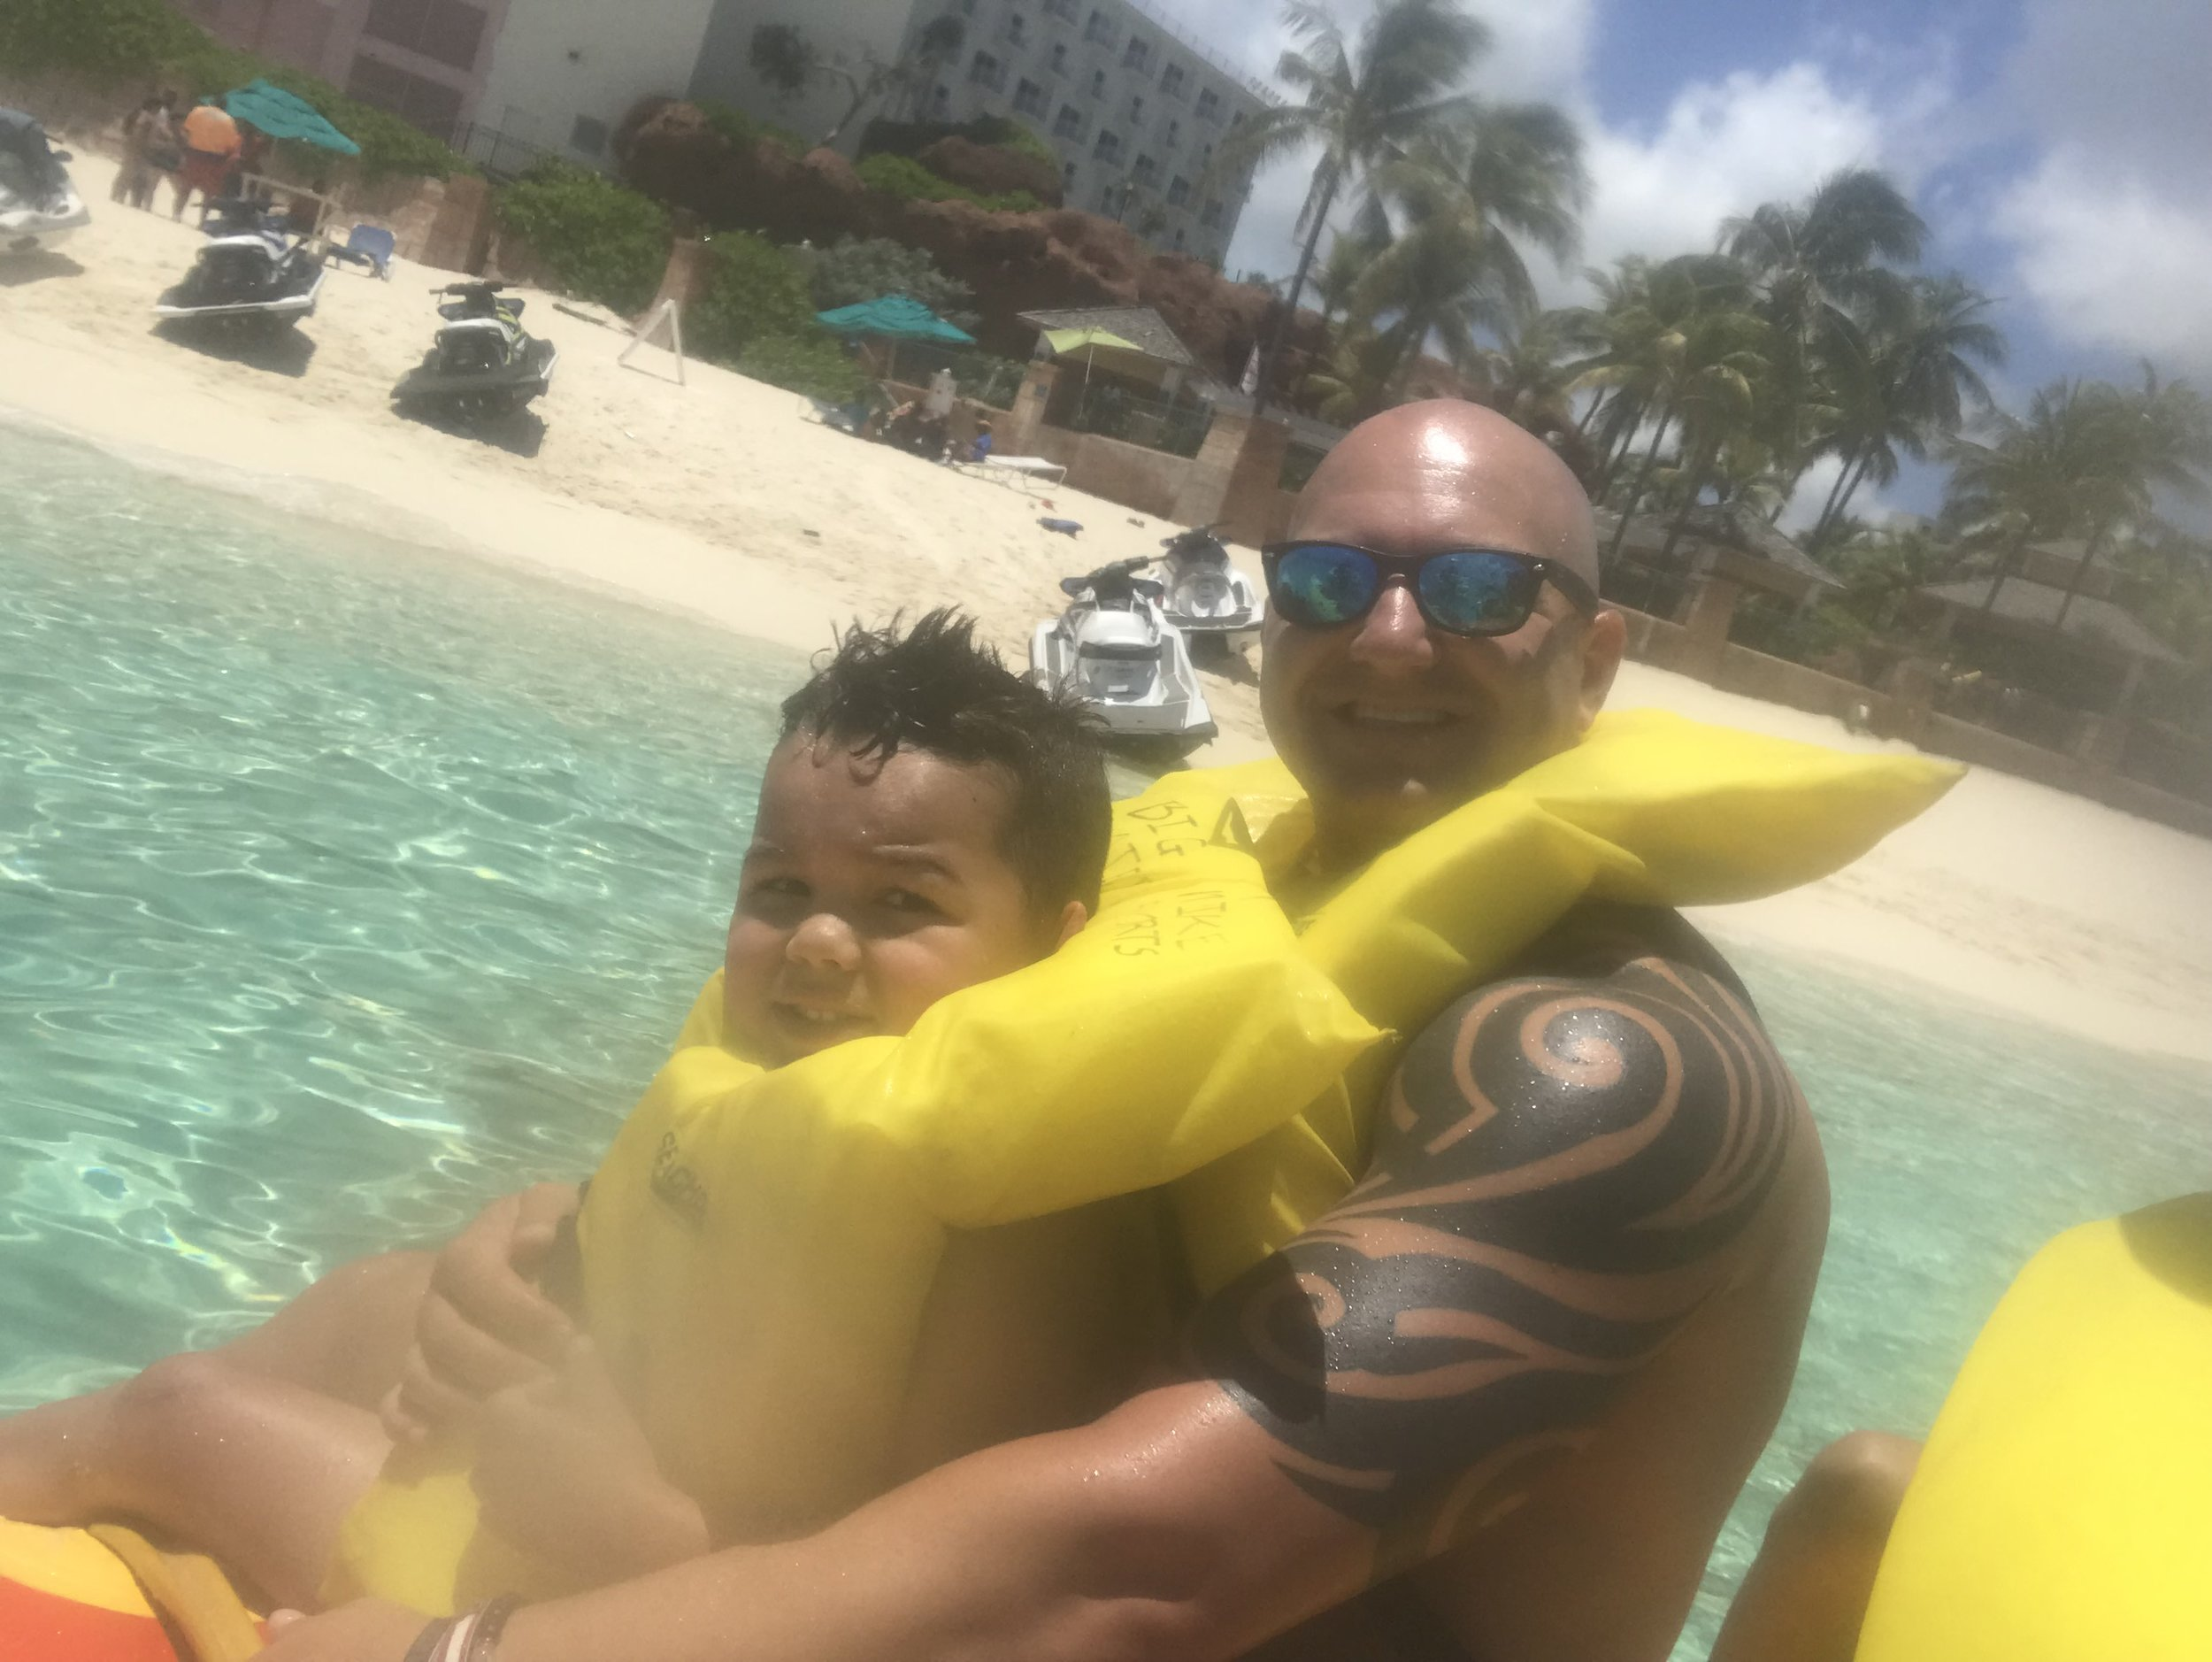 It's blurry because I had my waterproof case on. We took the boys on a banana boat ride. They didn't like it because the water smacked them in the face most of the time.